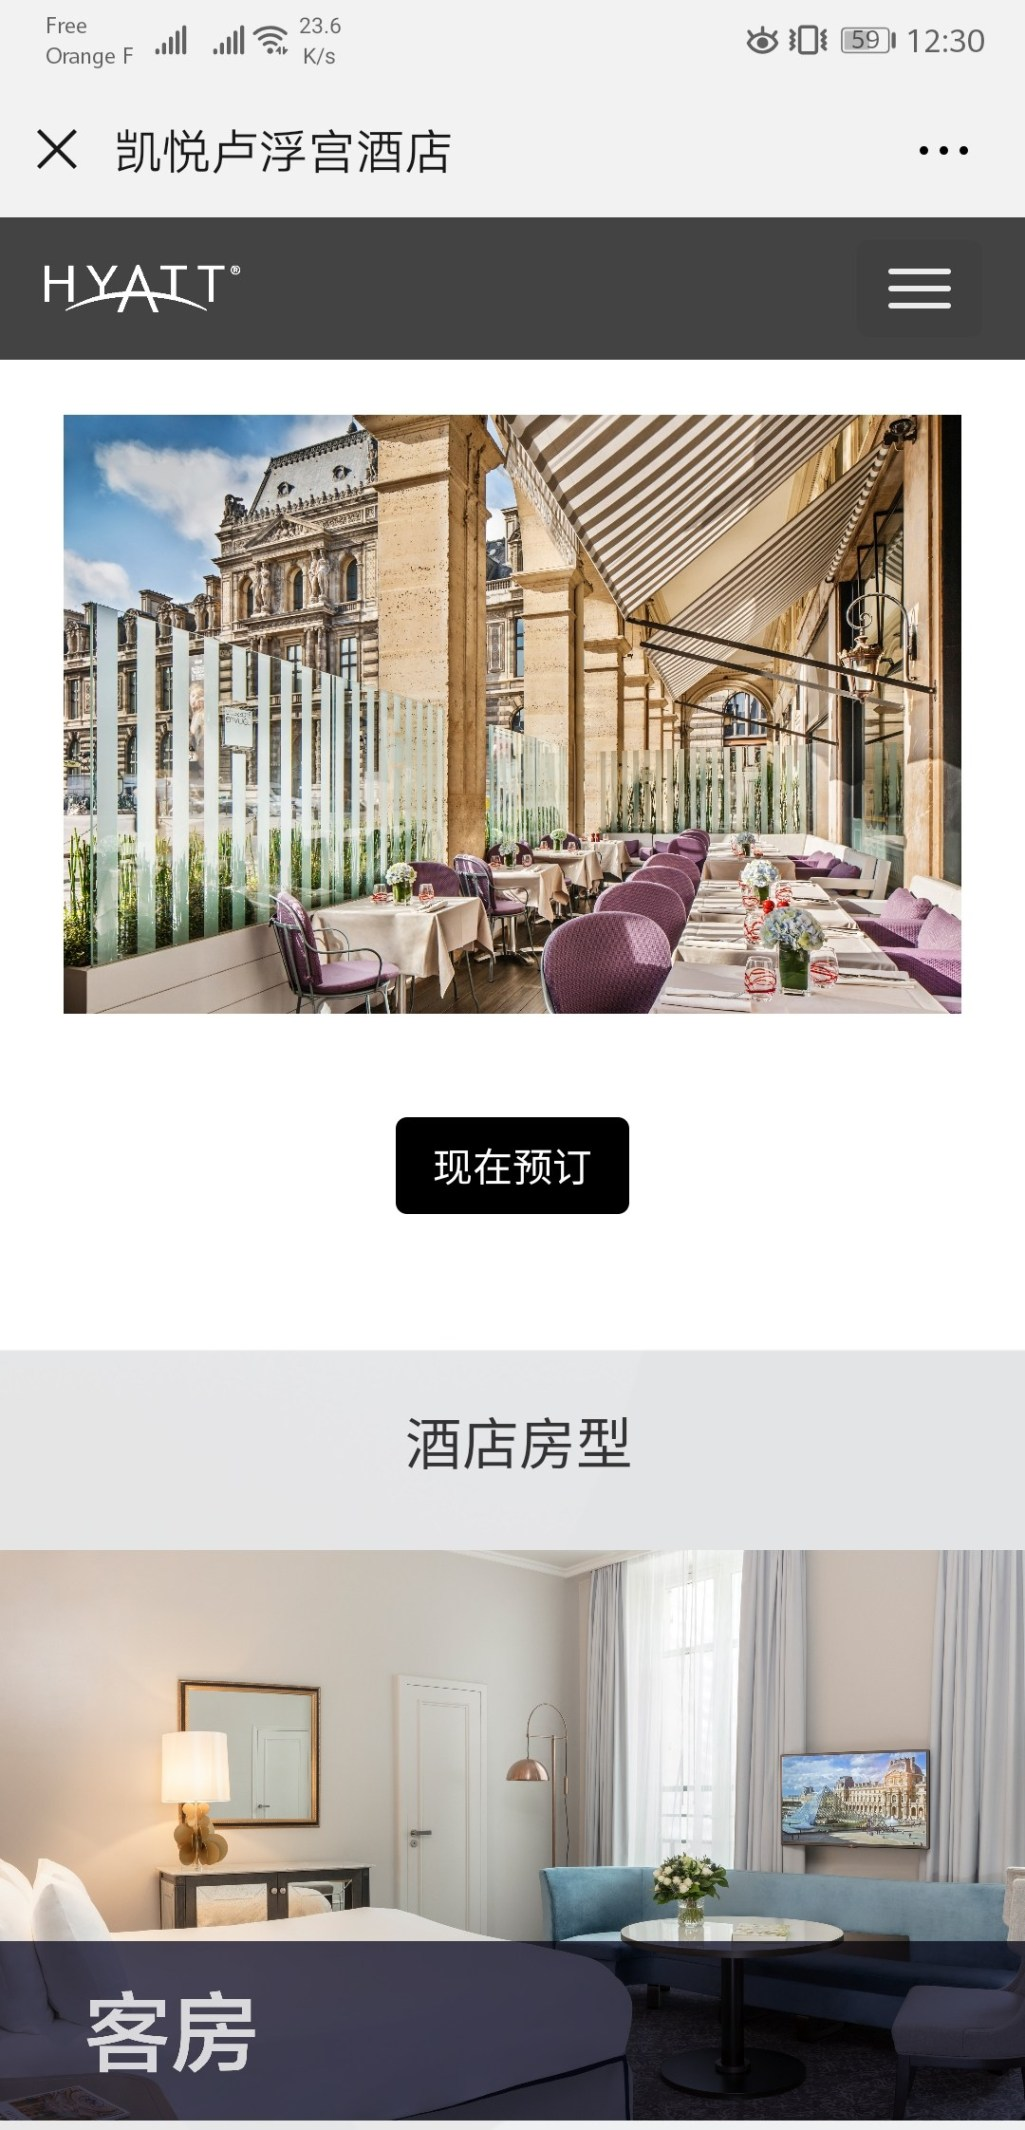 Wechat official account Hyatt Hospitality